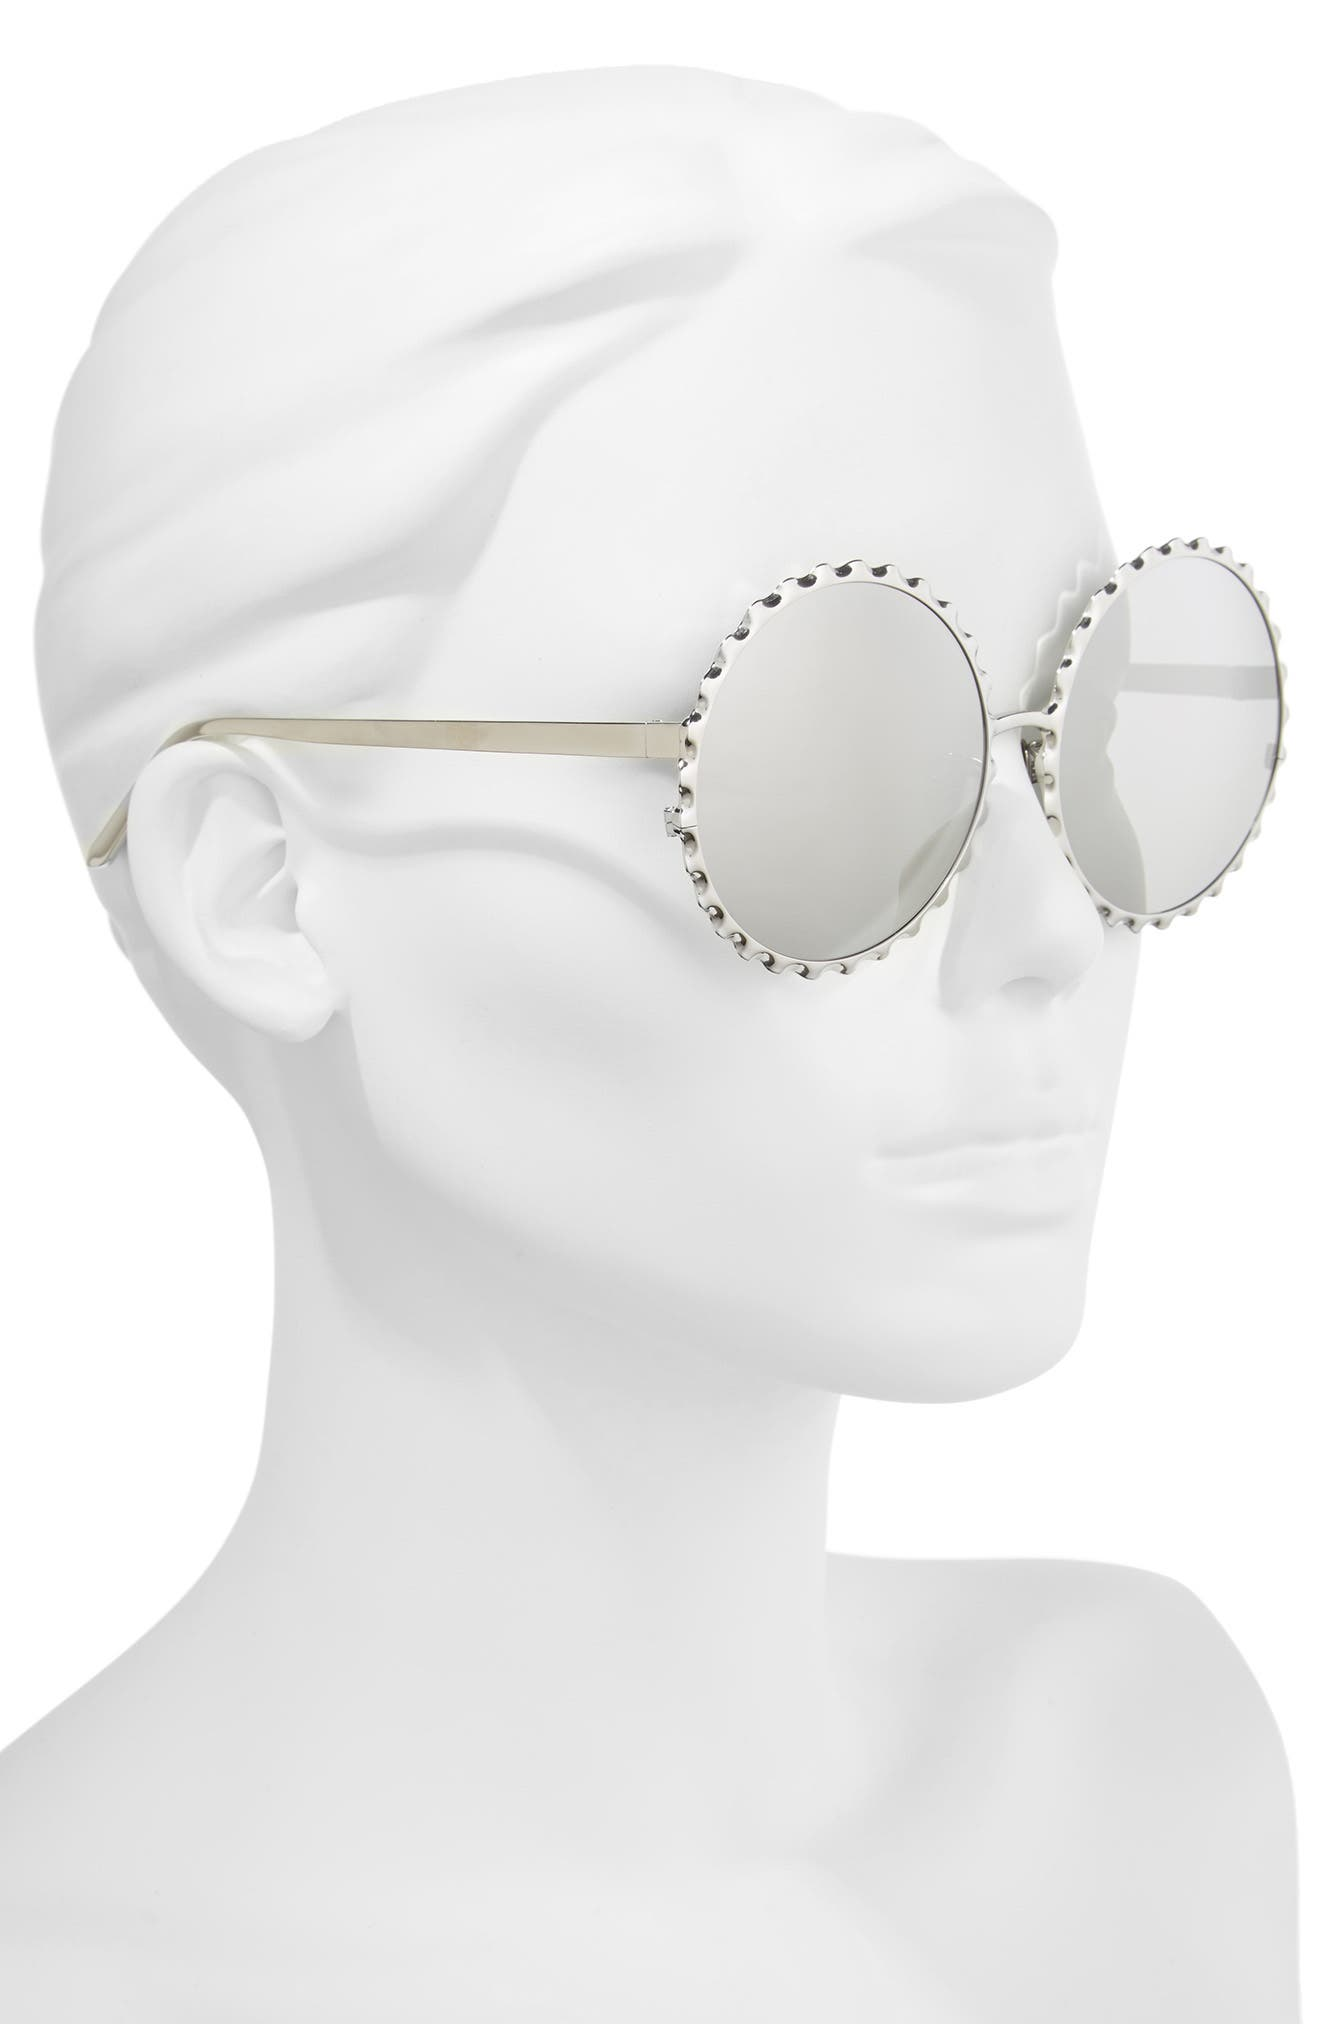 59mm Mirrored 18 Karat Gold Trim Round Sunglasses,                             Alternate thumbnail 2, color,